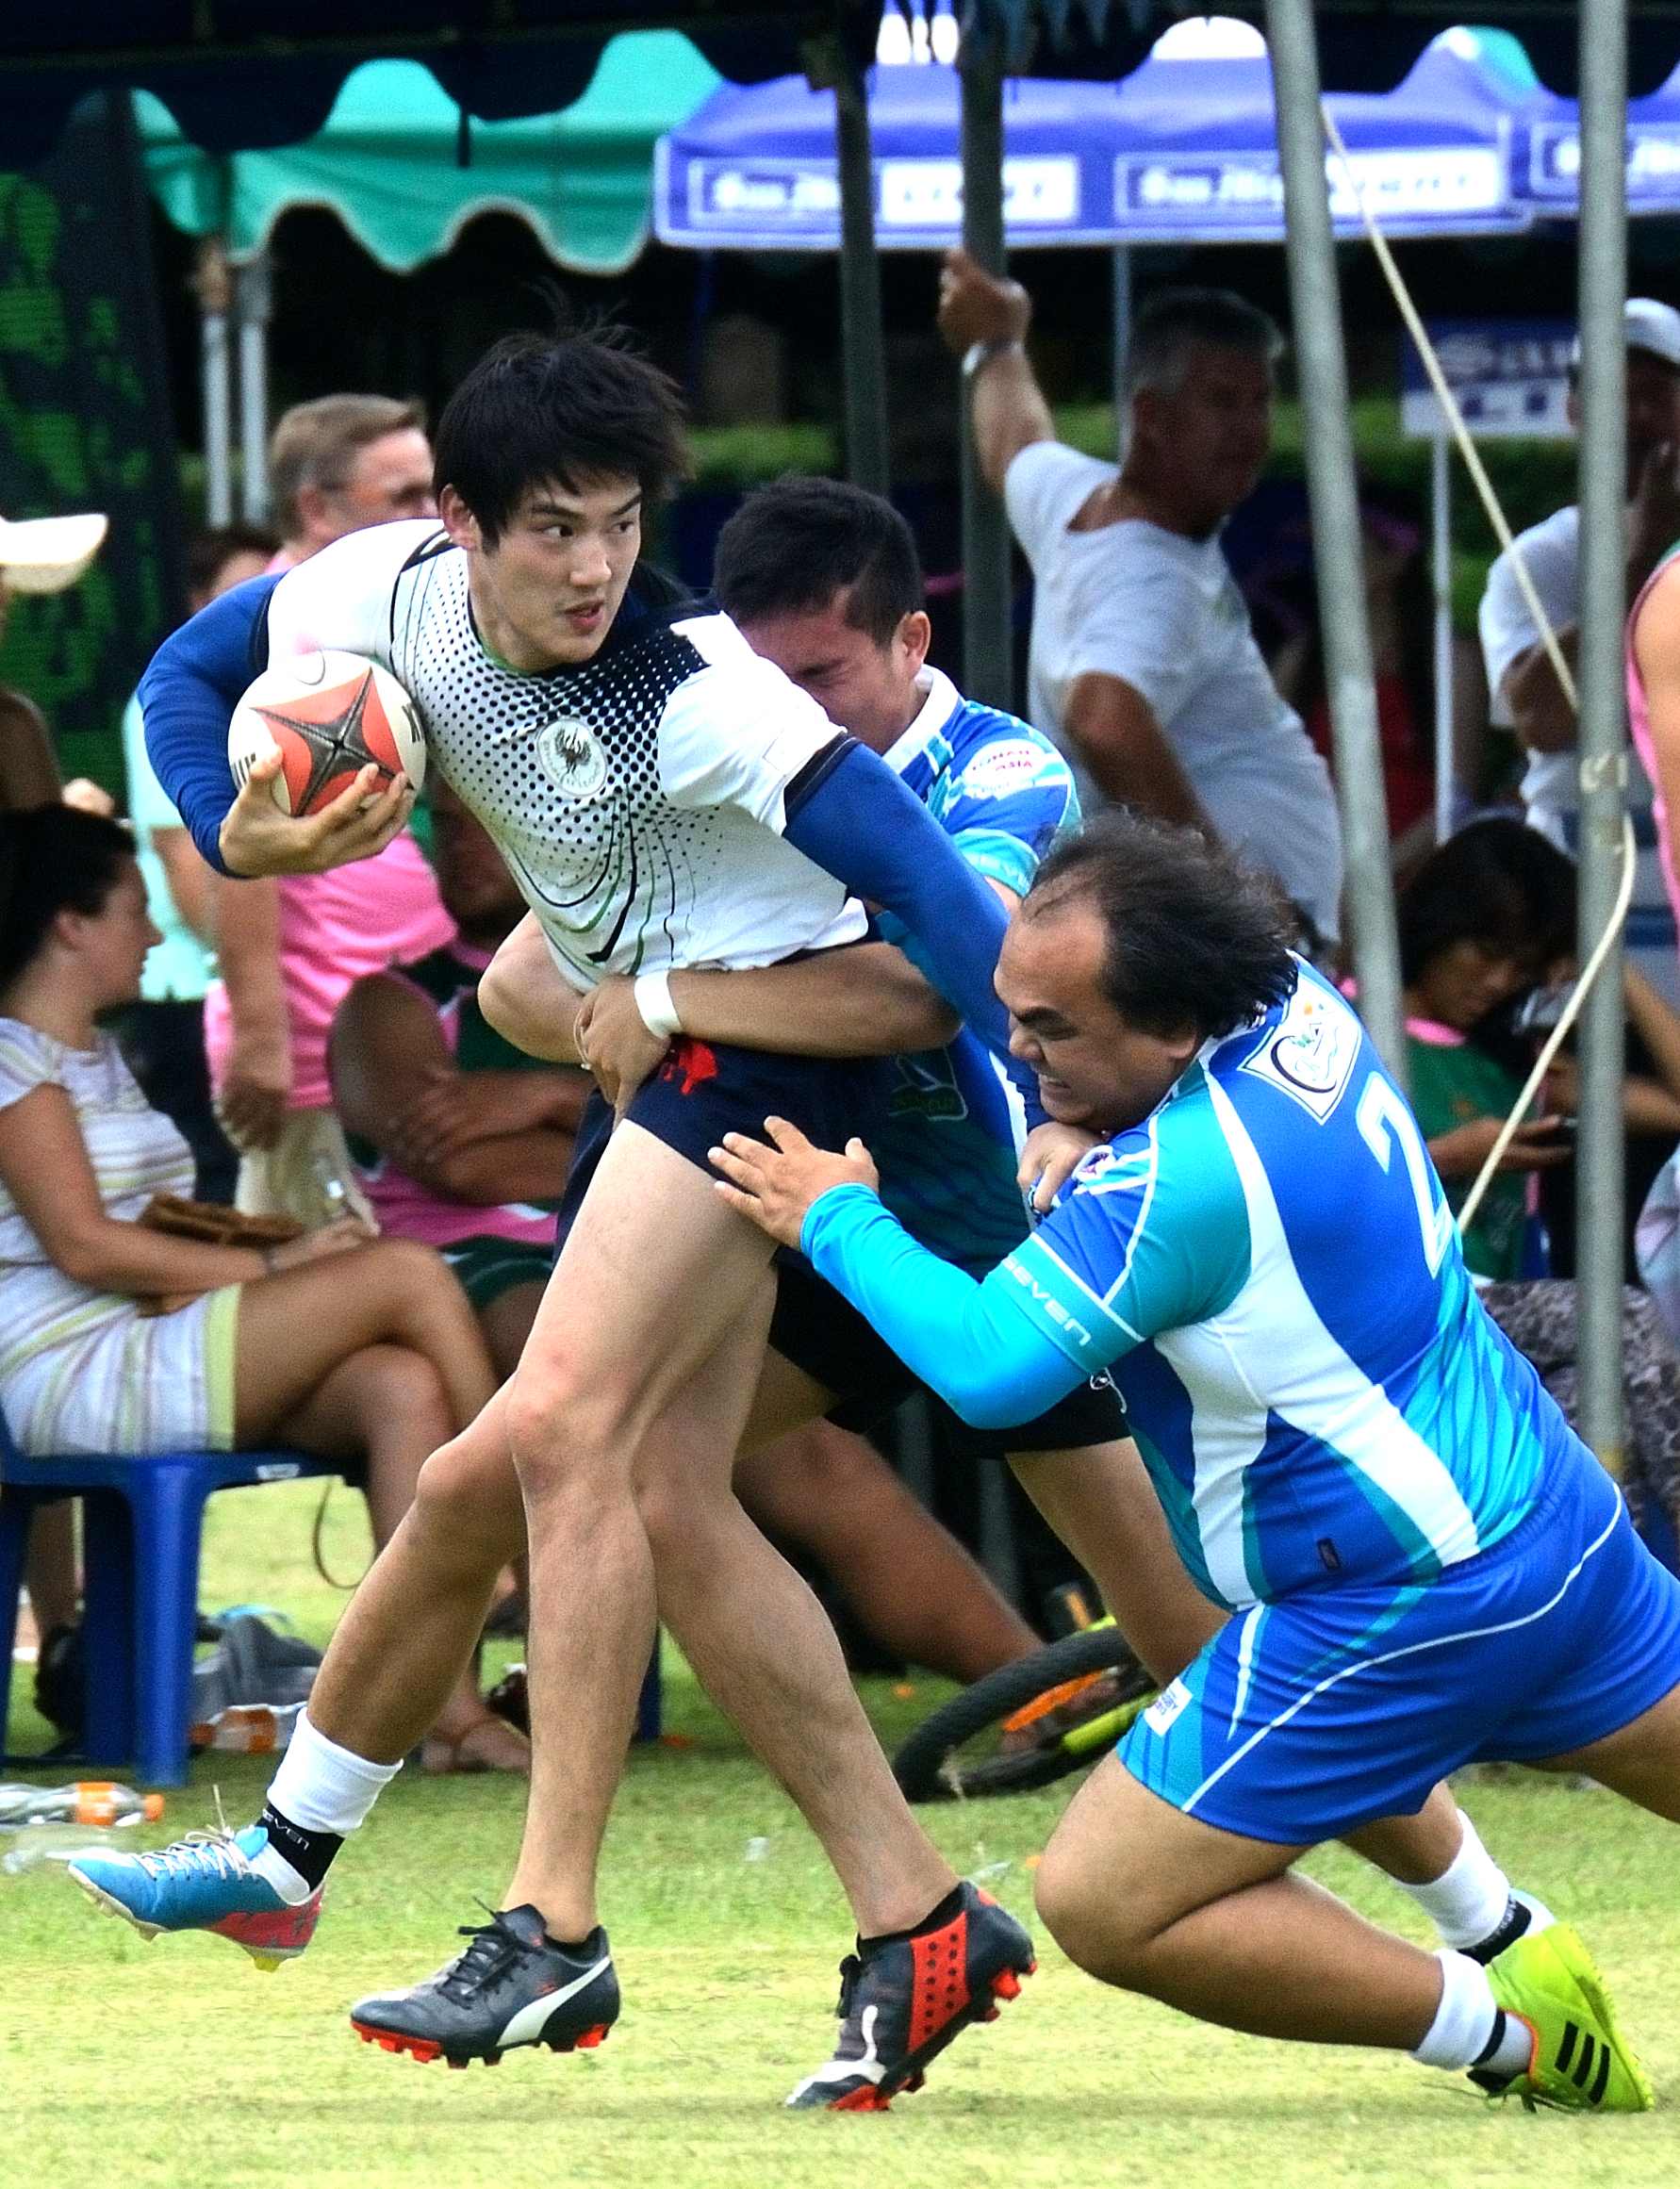 Enjoy some top-class rugby action this weekend at the Chris Kays Memorial Rugby Tournament, being held at Horseshoe Point in Pattaya from April 29-30.